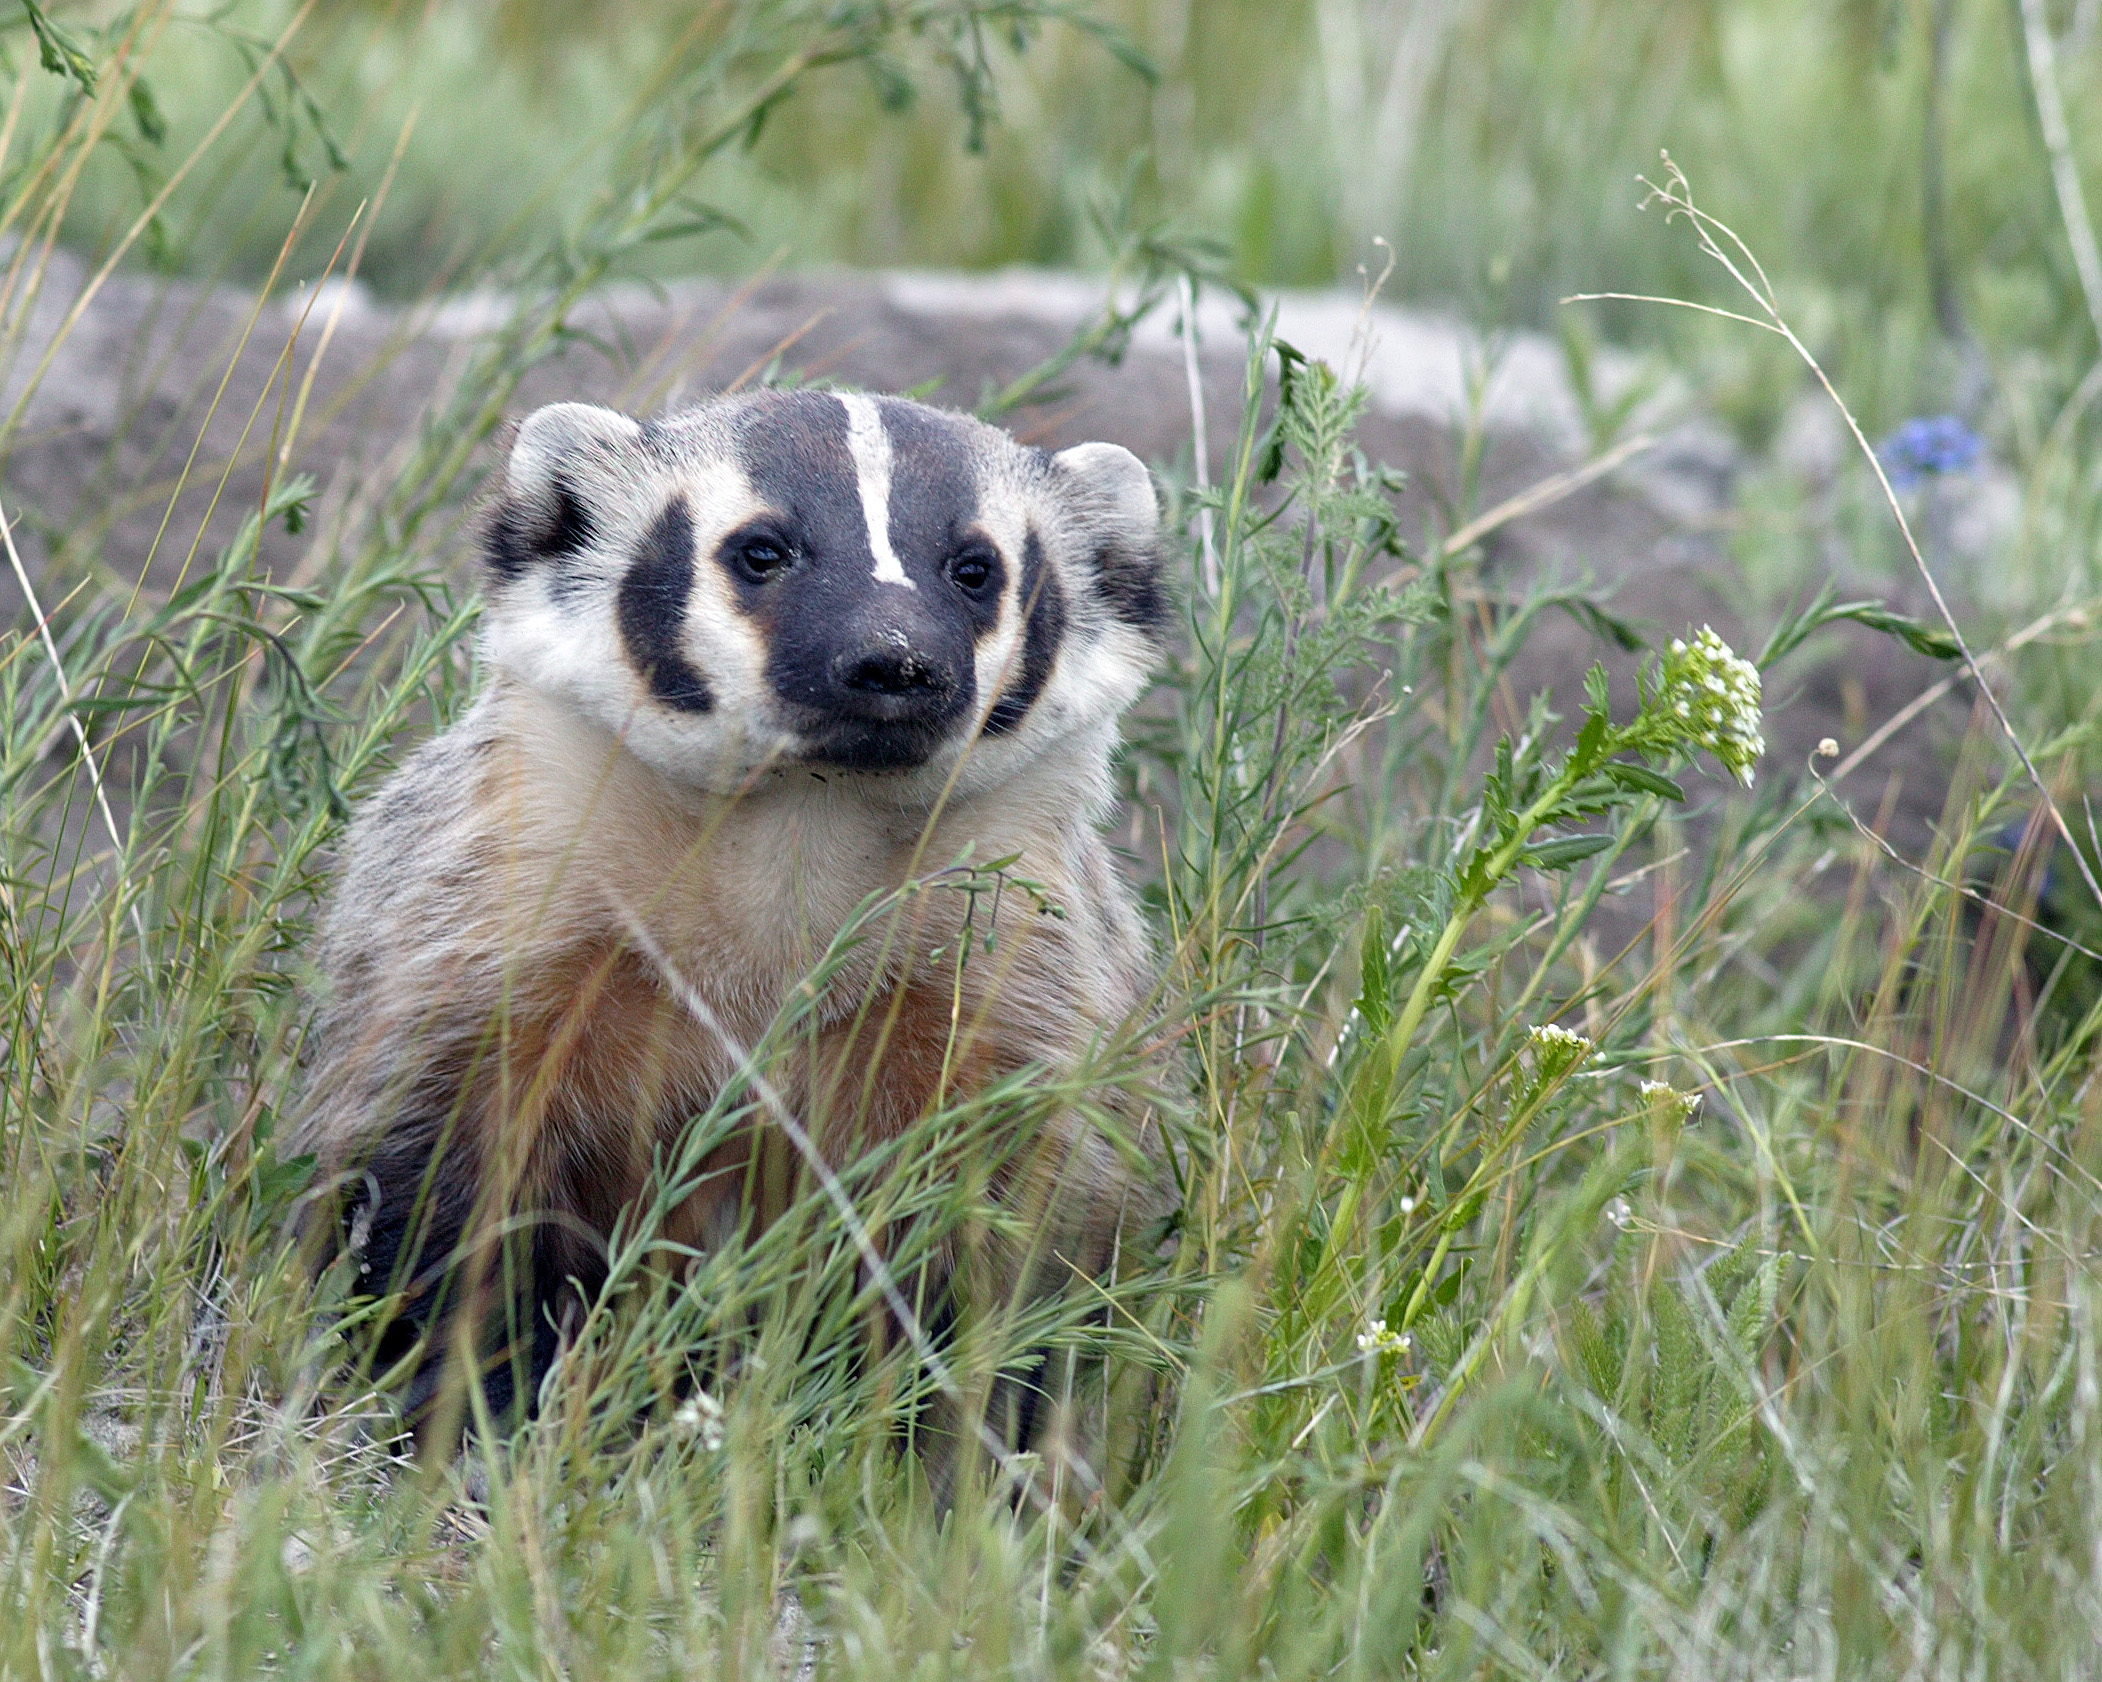 An American badger peeks up through the grass, perhaps looking for a nest to predate. Photo by James Perdue